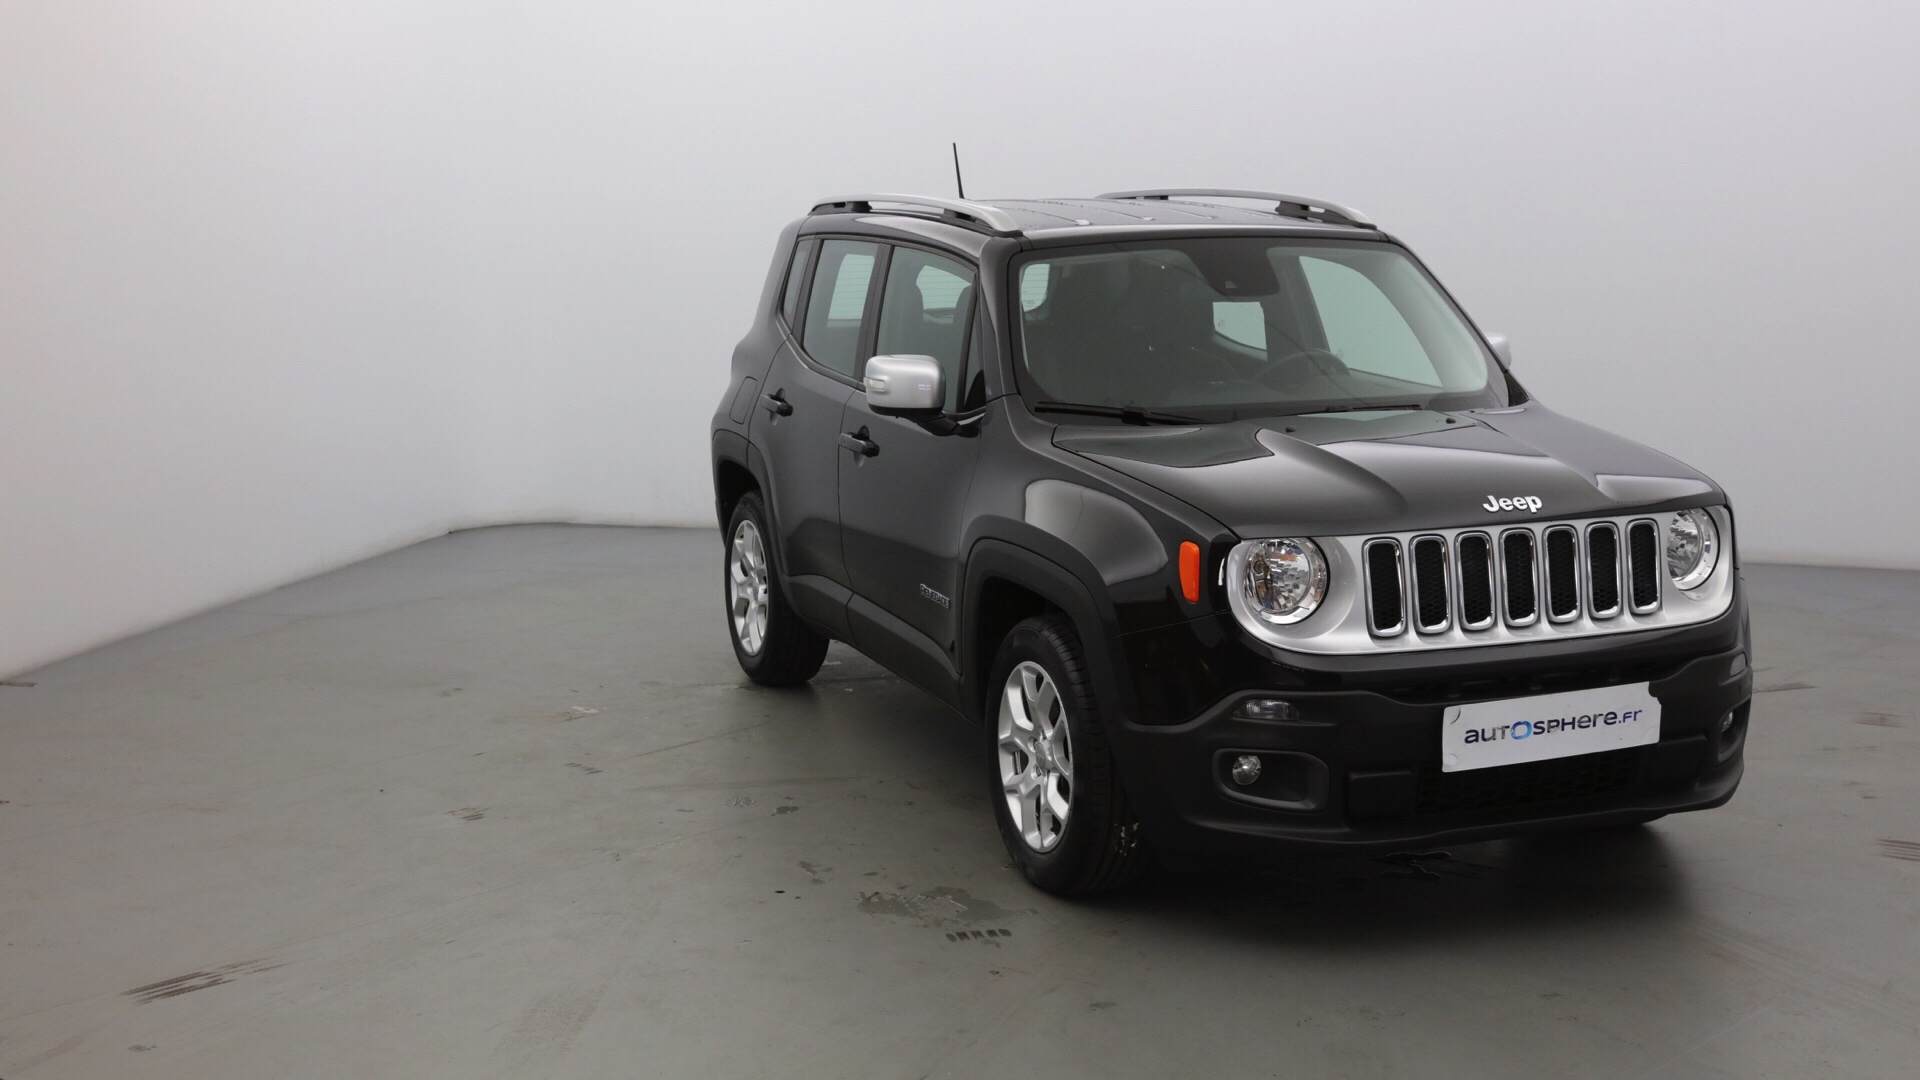 JEEP RENEGADE 1.4 MULTIAIR S&S 140CH LIMITED BVRD6 - Miniature 3